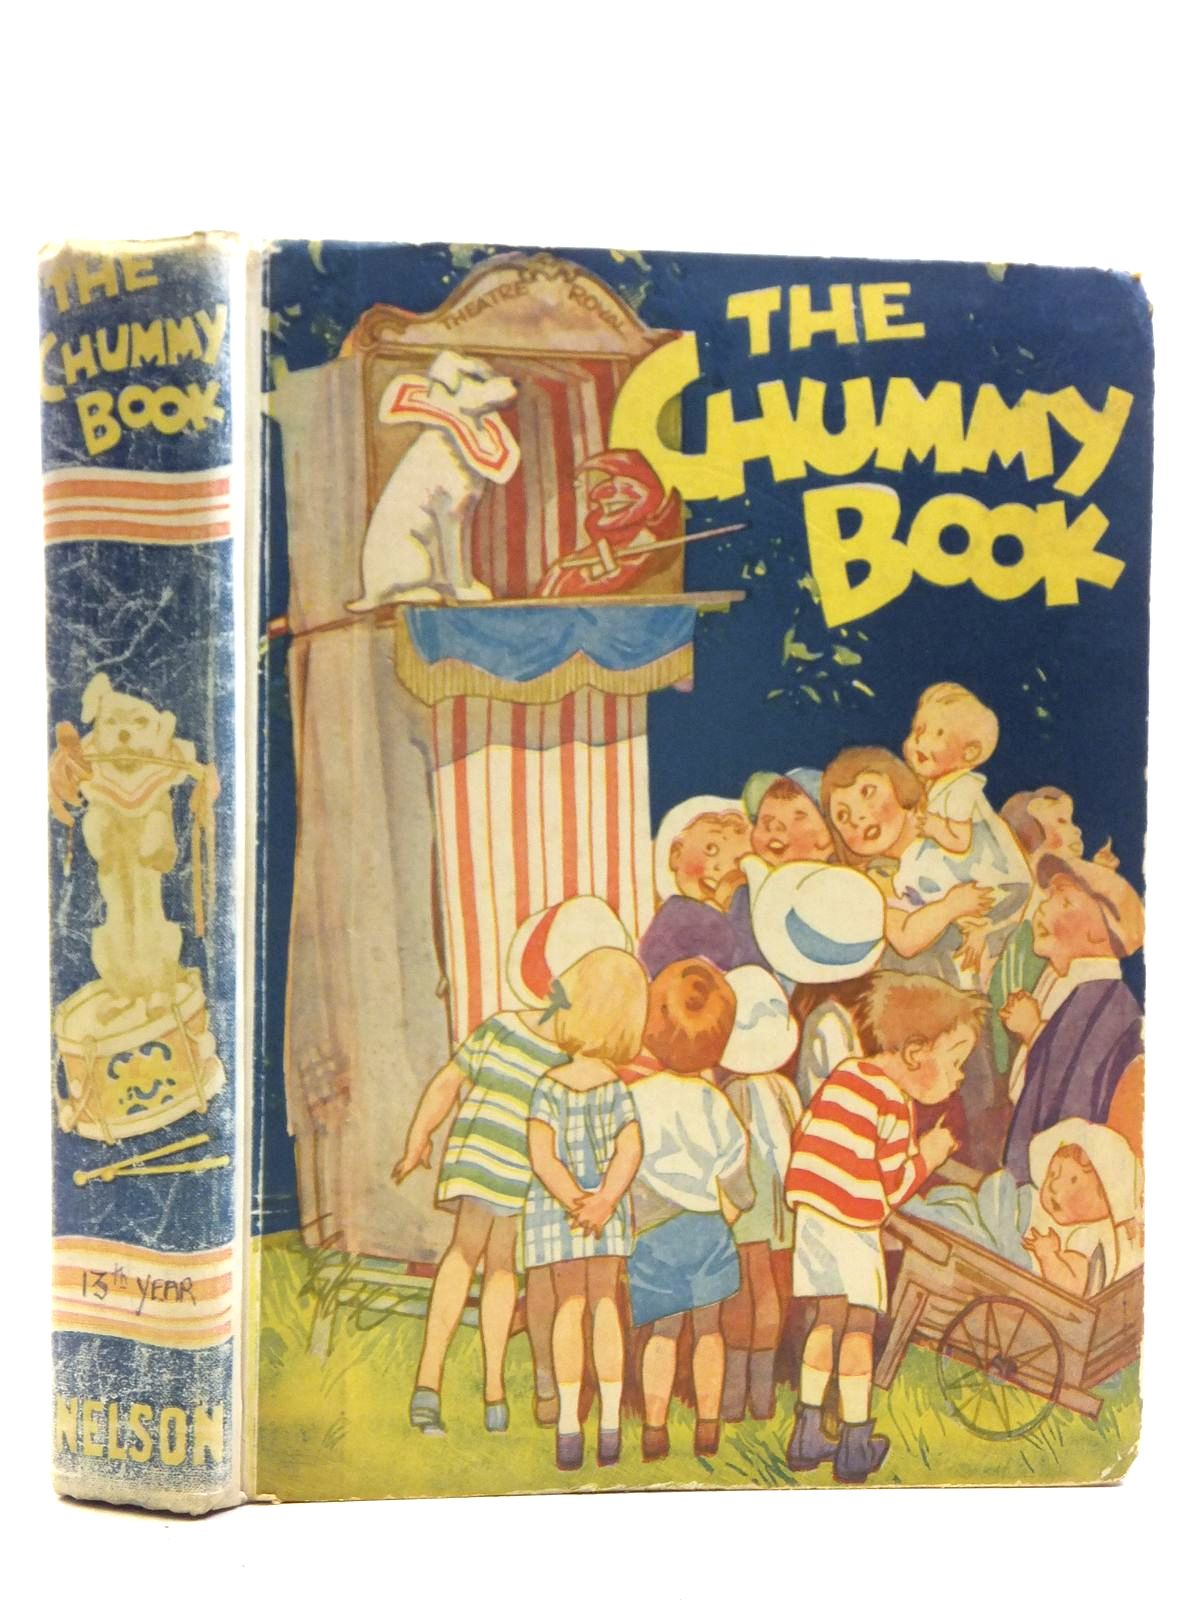 Photo of THE CHUMMY BOOK - THIRTEENTH YEAR written by Chisholm, Edwin<br />Russell, Dorothy<br />Herbertson, Agnes Grozier<br />Hart, Frank<br />Mercer, Joyce<br />et al, illustrated by Wood, Lawson<br />Preston, Chloe<br />Studdy, G.E.<br />Woolley, Harry<br />Hart, Frank<br />et al., published by Thomas Nelson and Sons Ltd. (STOCK CODE: 2120403)  for sale by Stella & Rose's Books